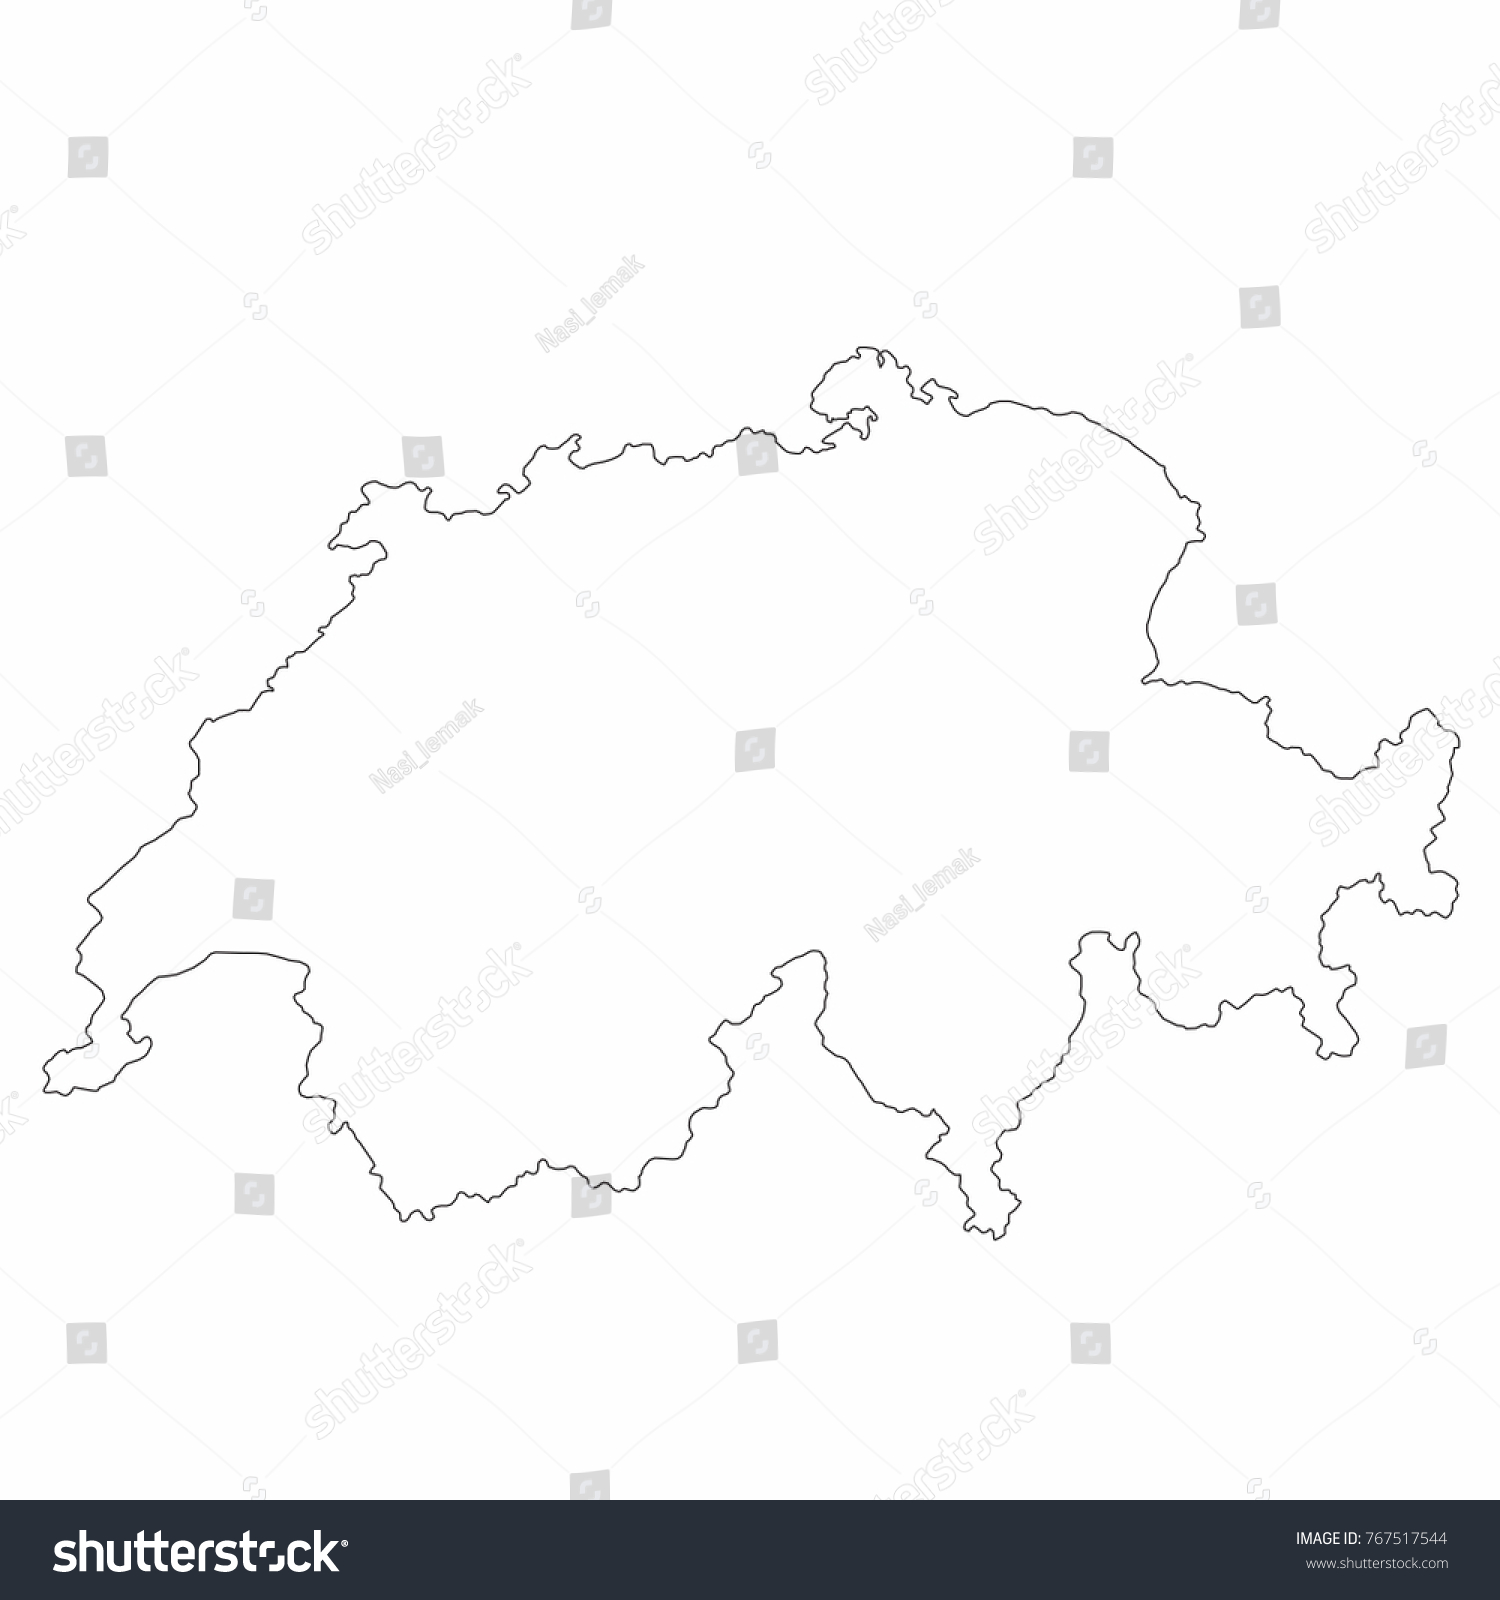 Switzerland world map country outline graphic stock vector switzerland world map country outline in graphic design concept gumiabroncs Images